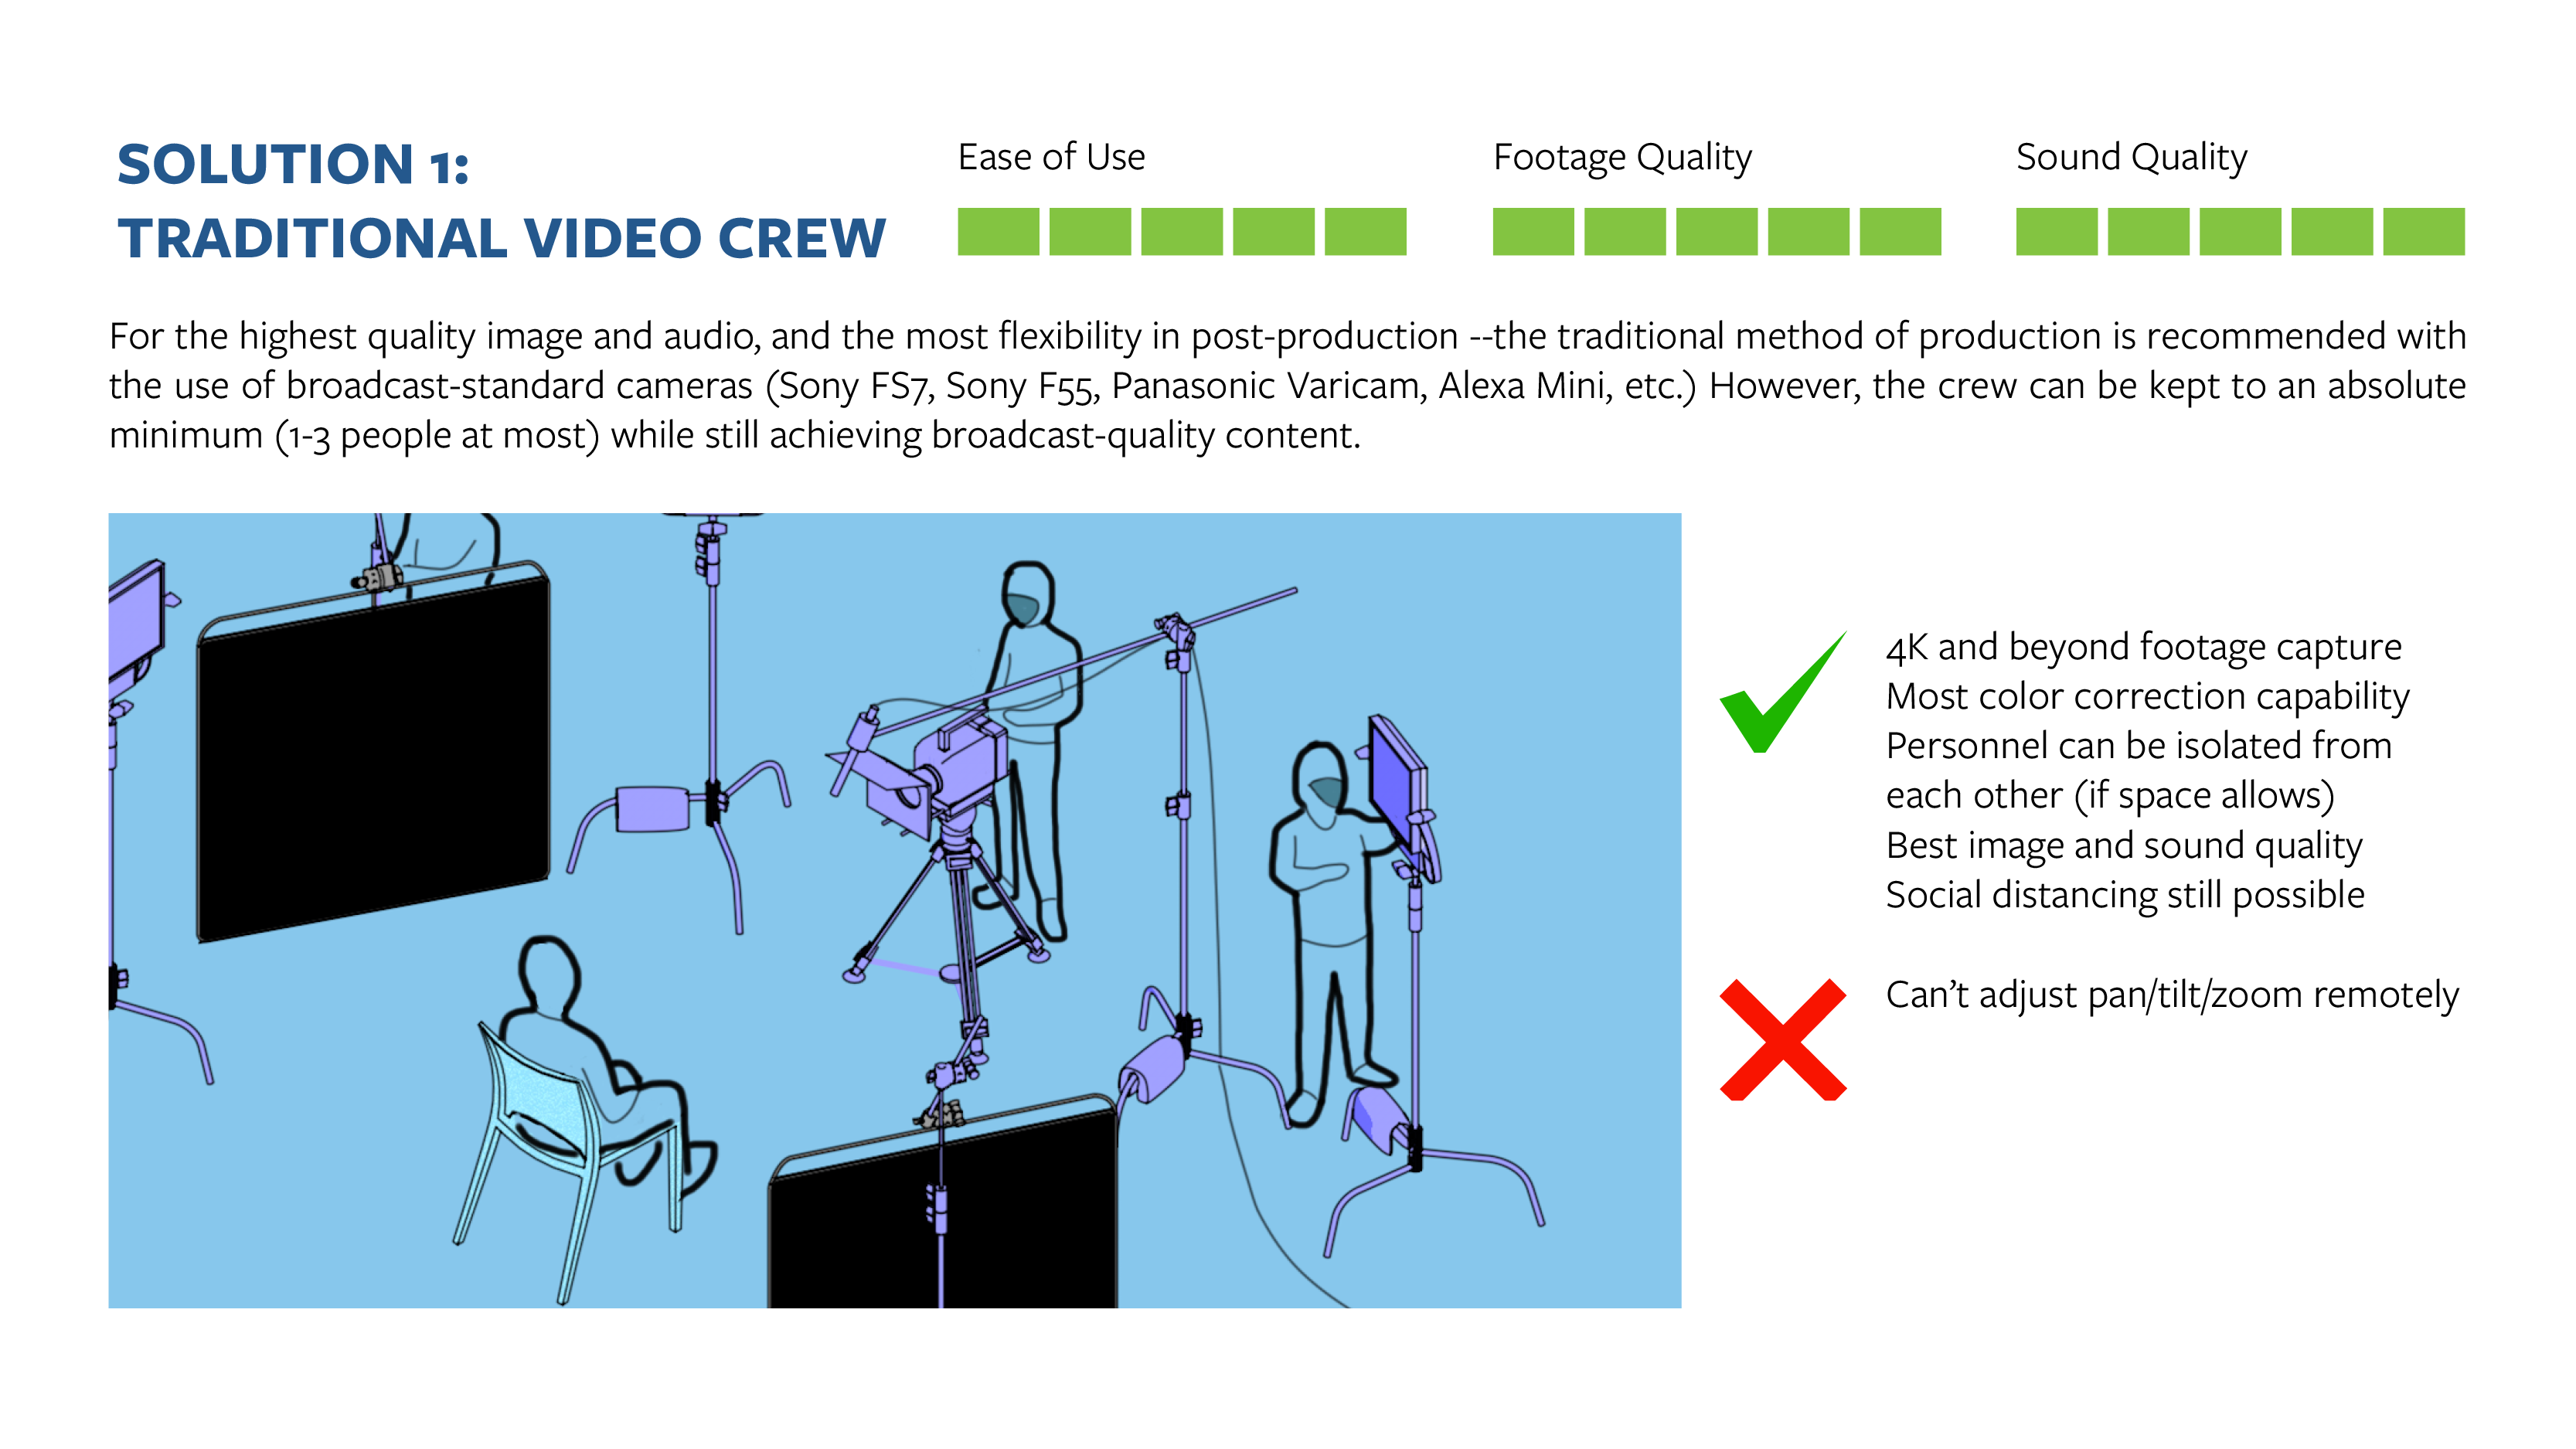 Solution 1 - Traditional Video Crew